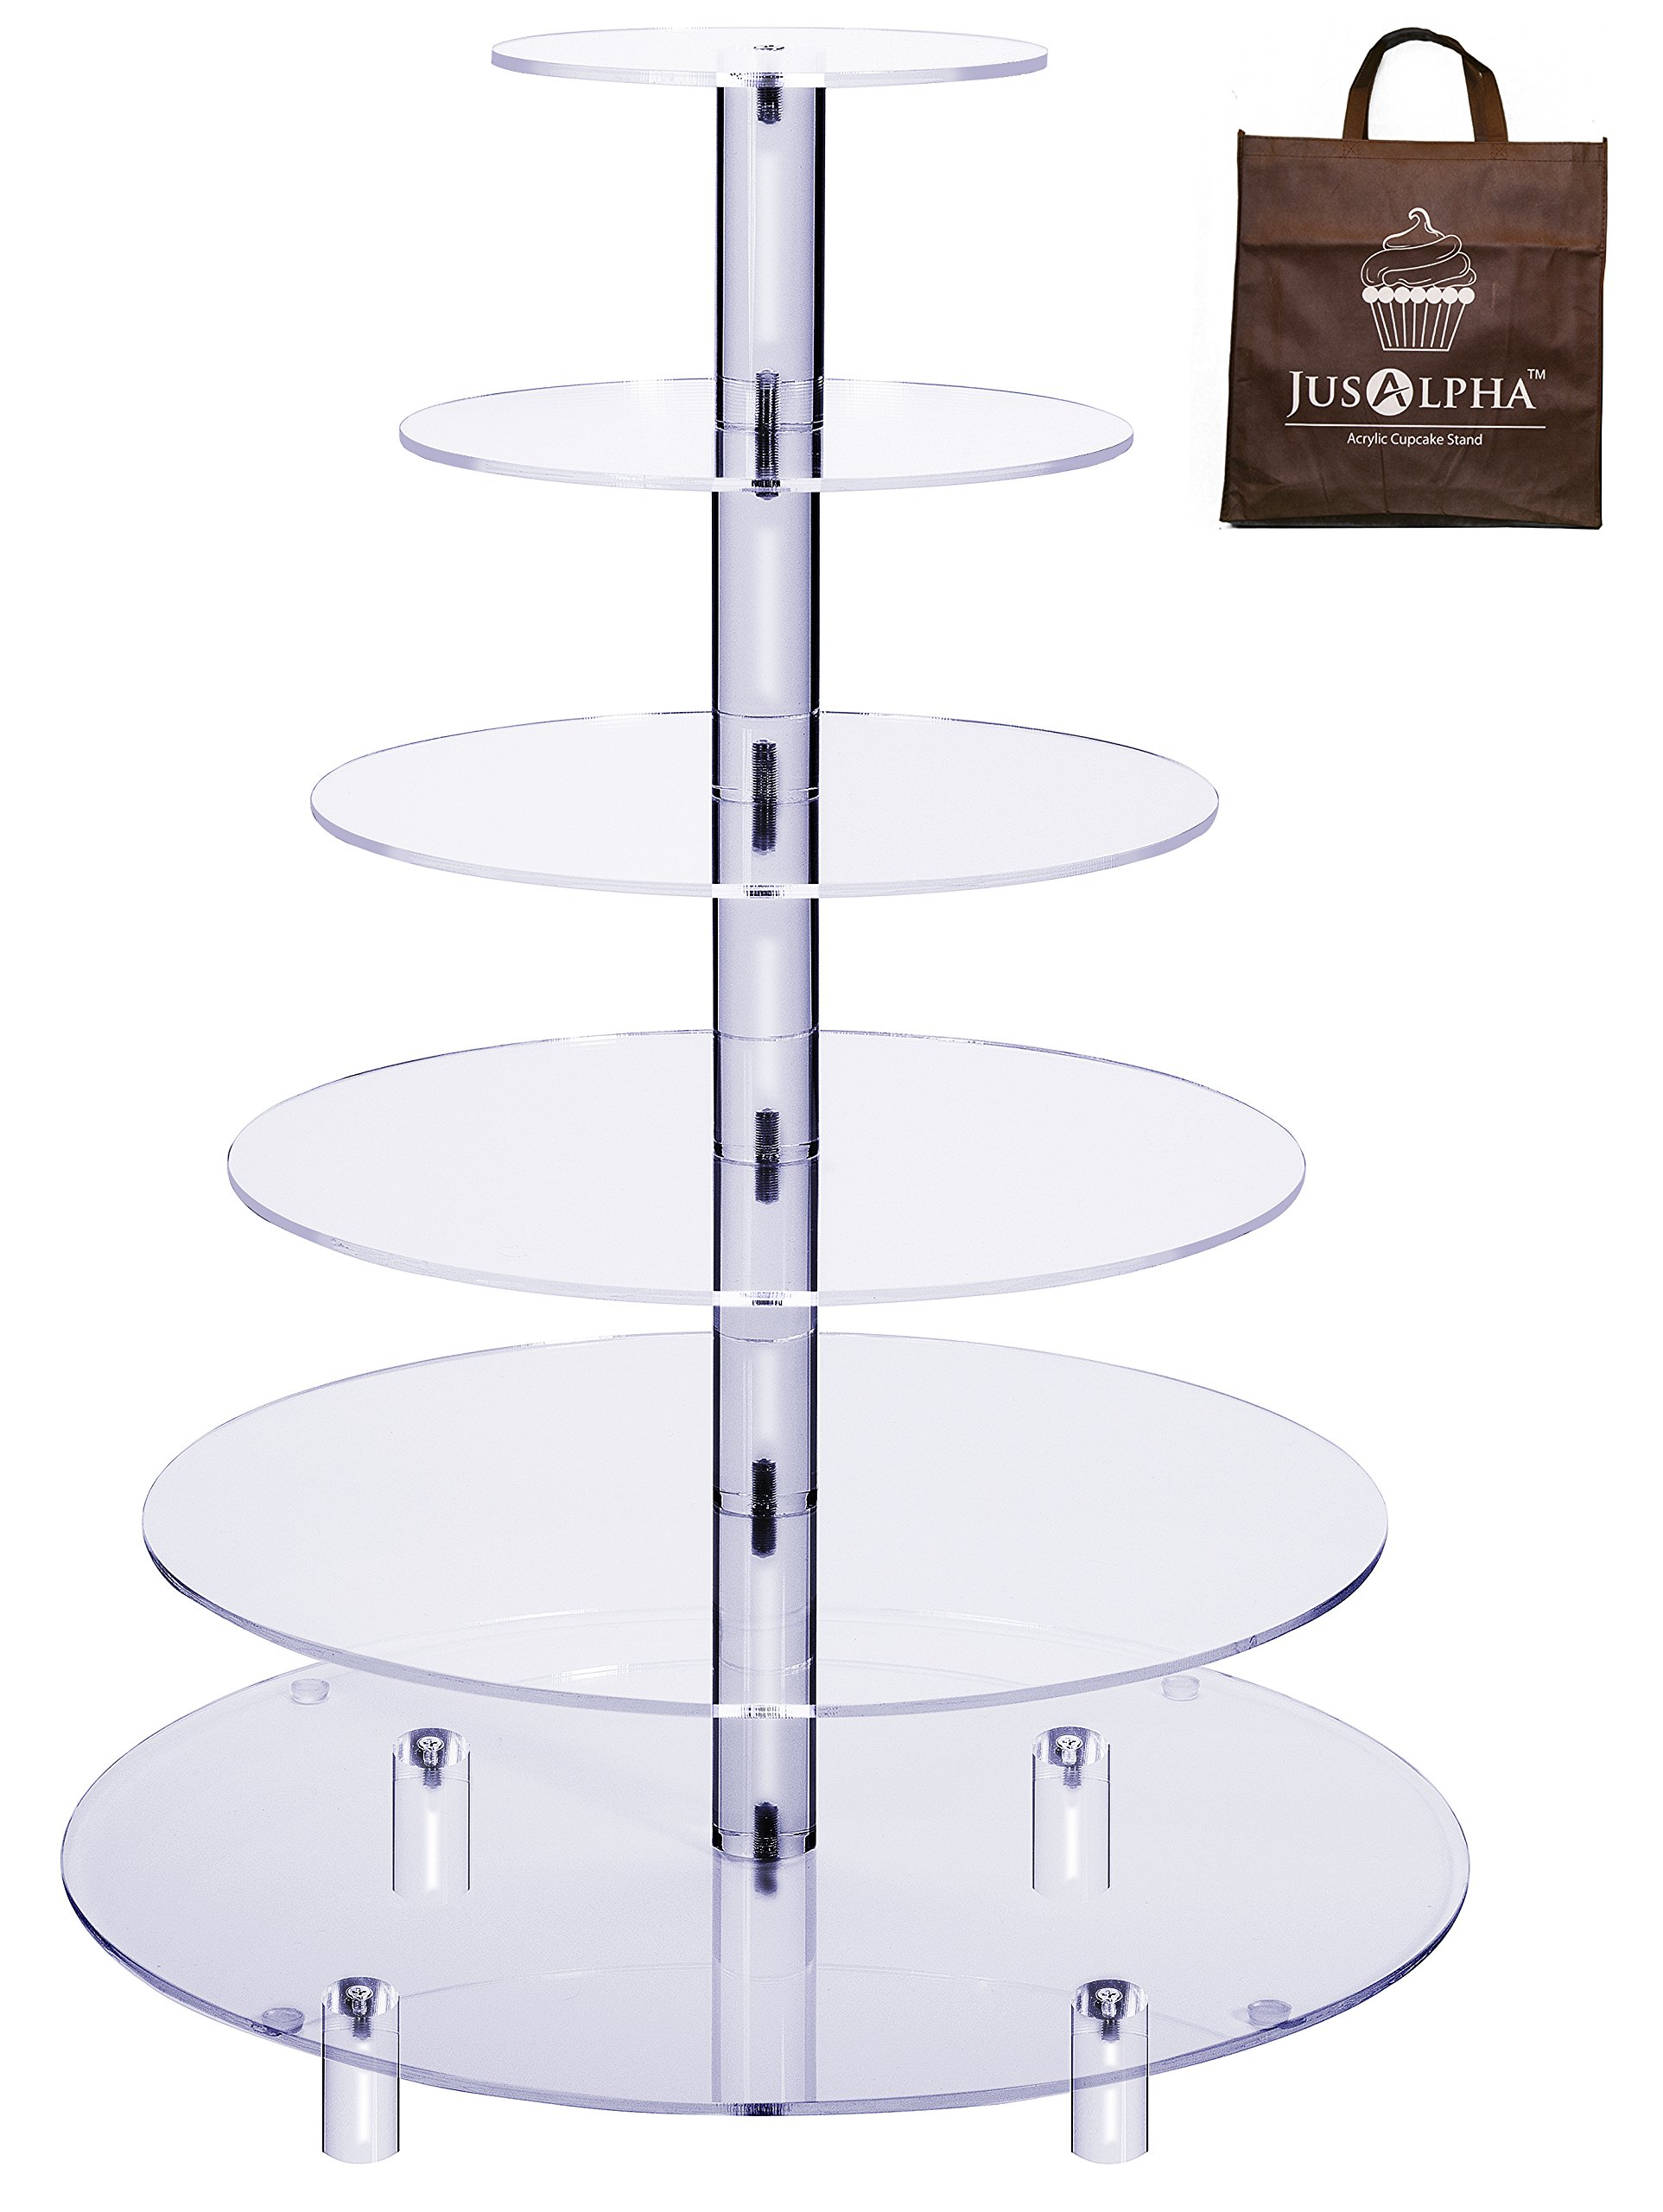 Jusalpha Large 6-Tier Acrylic Glass Round Wedding Cake Stand- Cupcake Stand Tower/Dessert Stand- Pastry Serving Platter- Food Display Stand (Large With Rod Feet) (6RF) by Jusalpha